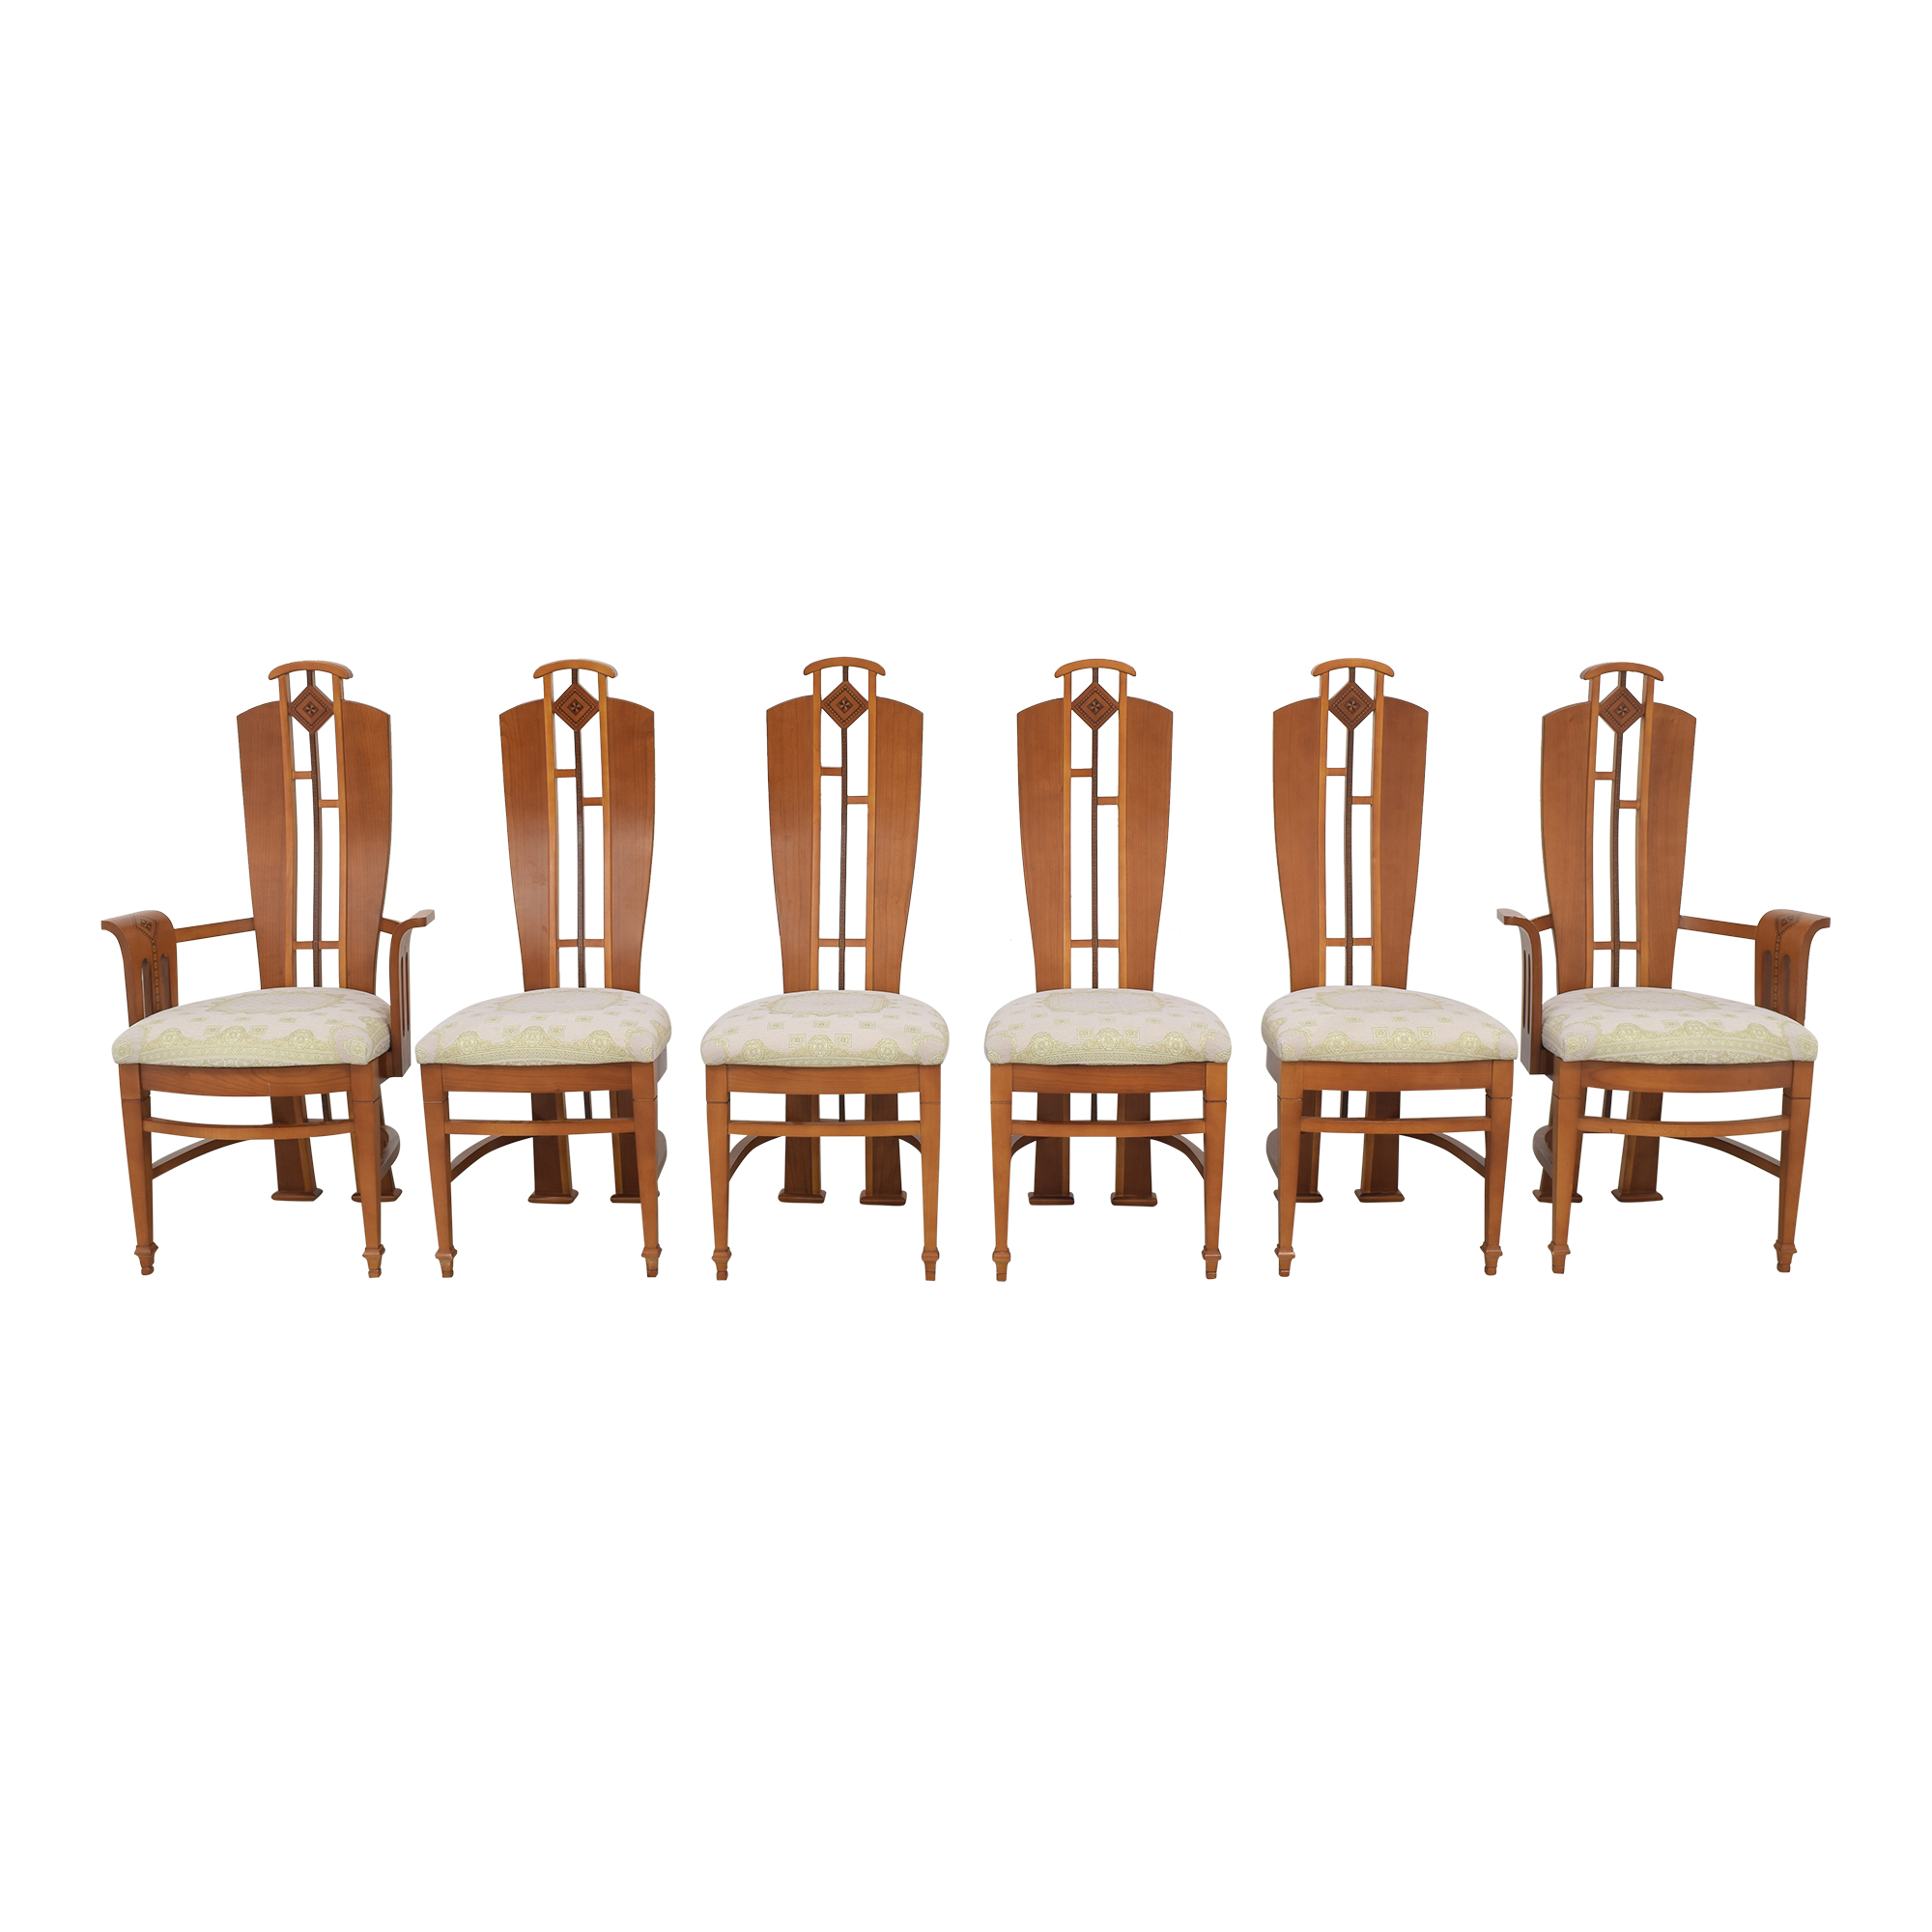 World Of Decor Dining Chairs dimensions